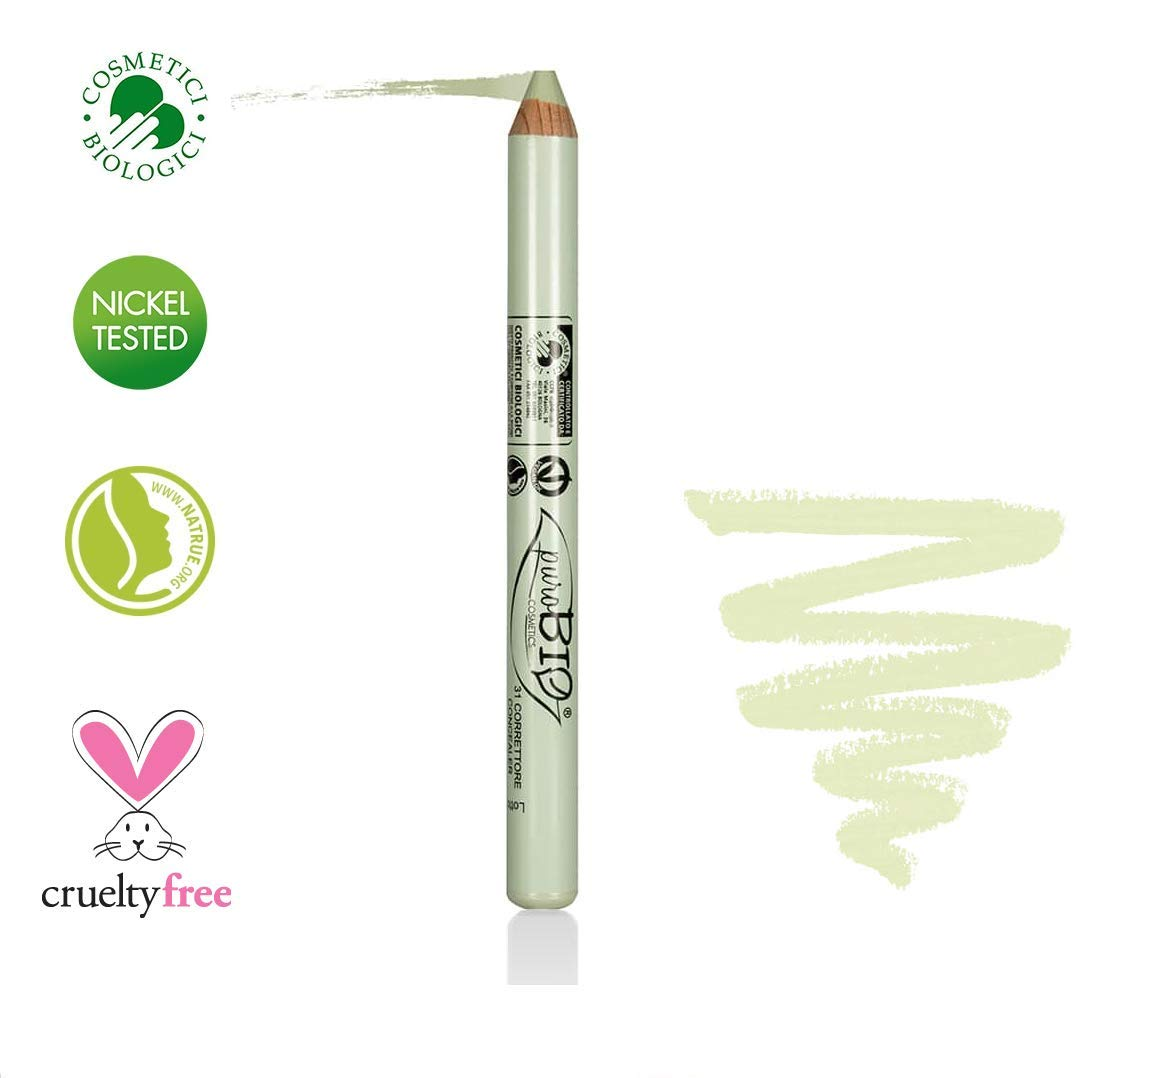 PuroBIO Certified Organic Multitasking Color Corrector Stick GREEN to cover Redness, Acne Marks, Scars with Vitamins, Soy and Apricot Oil. ORGANIC. VEGAN. NICKEL TESTED, MADE IN ITALY